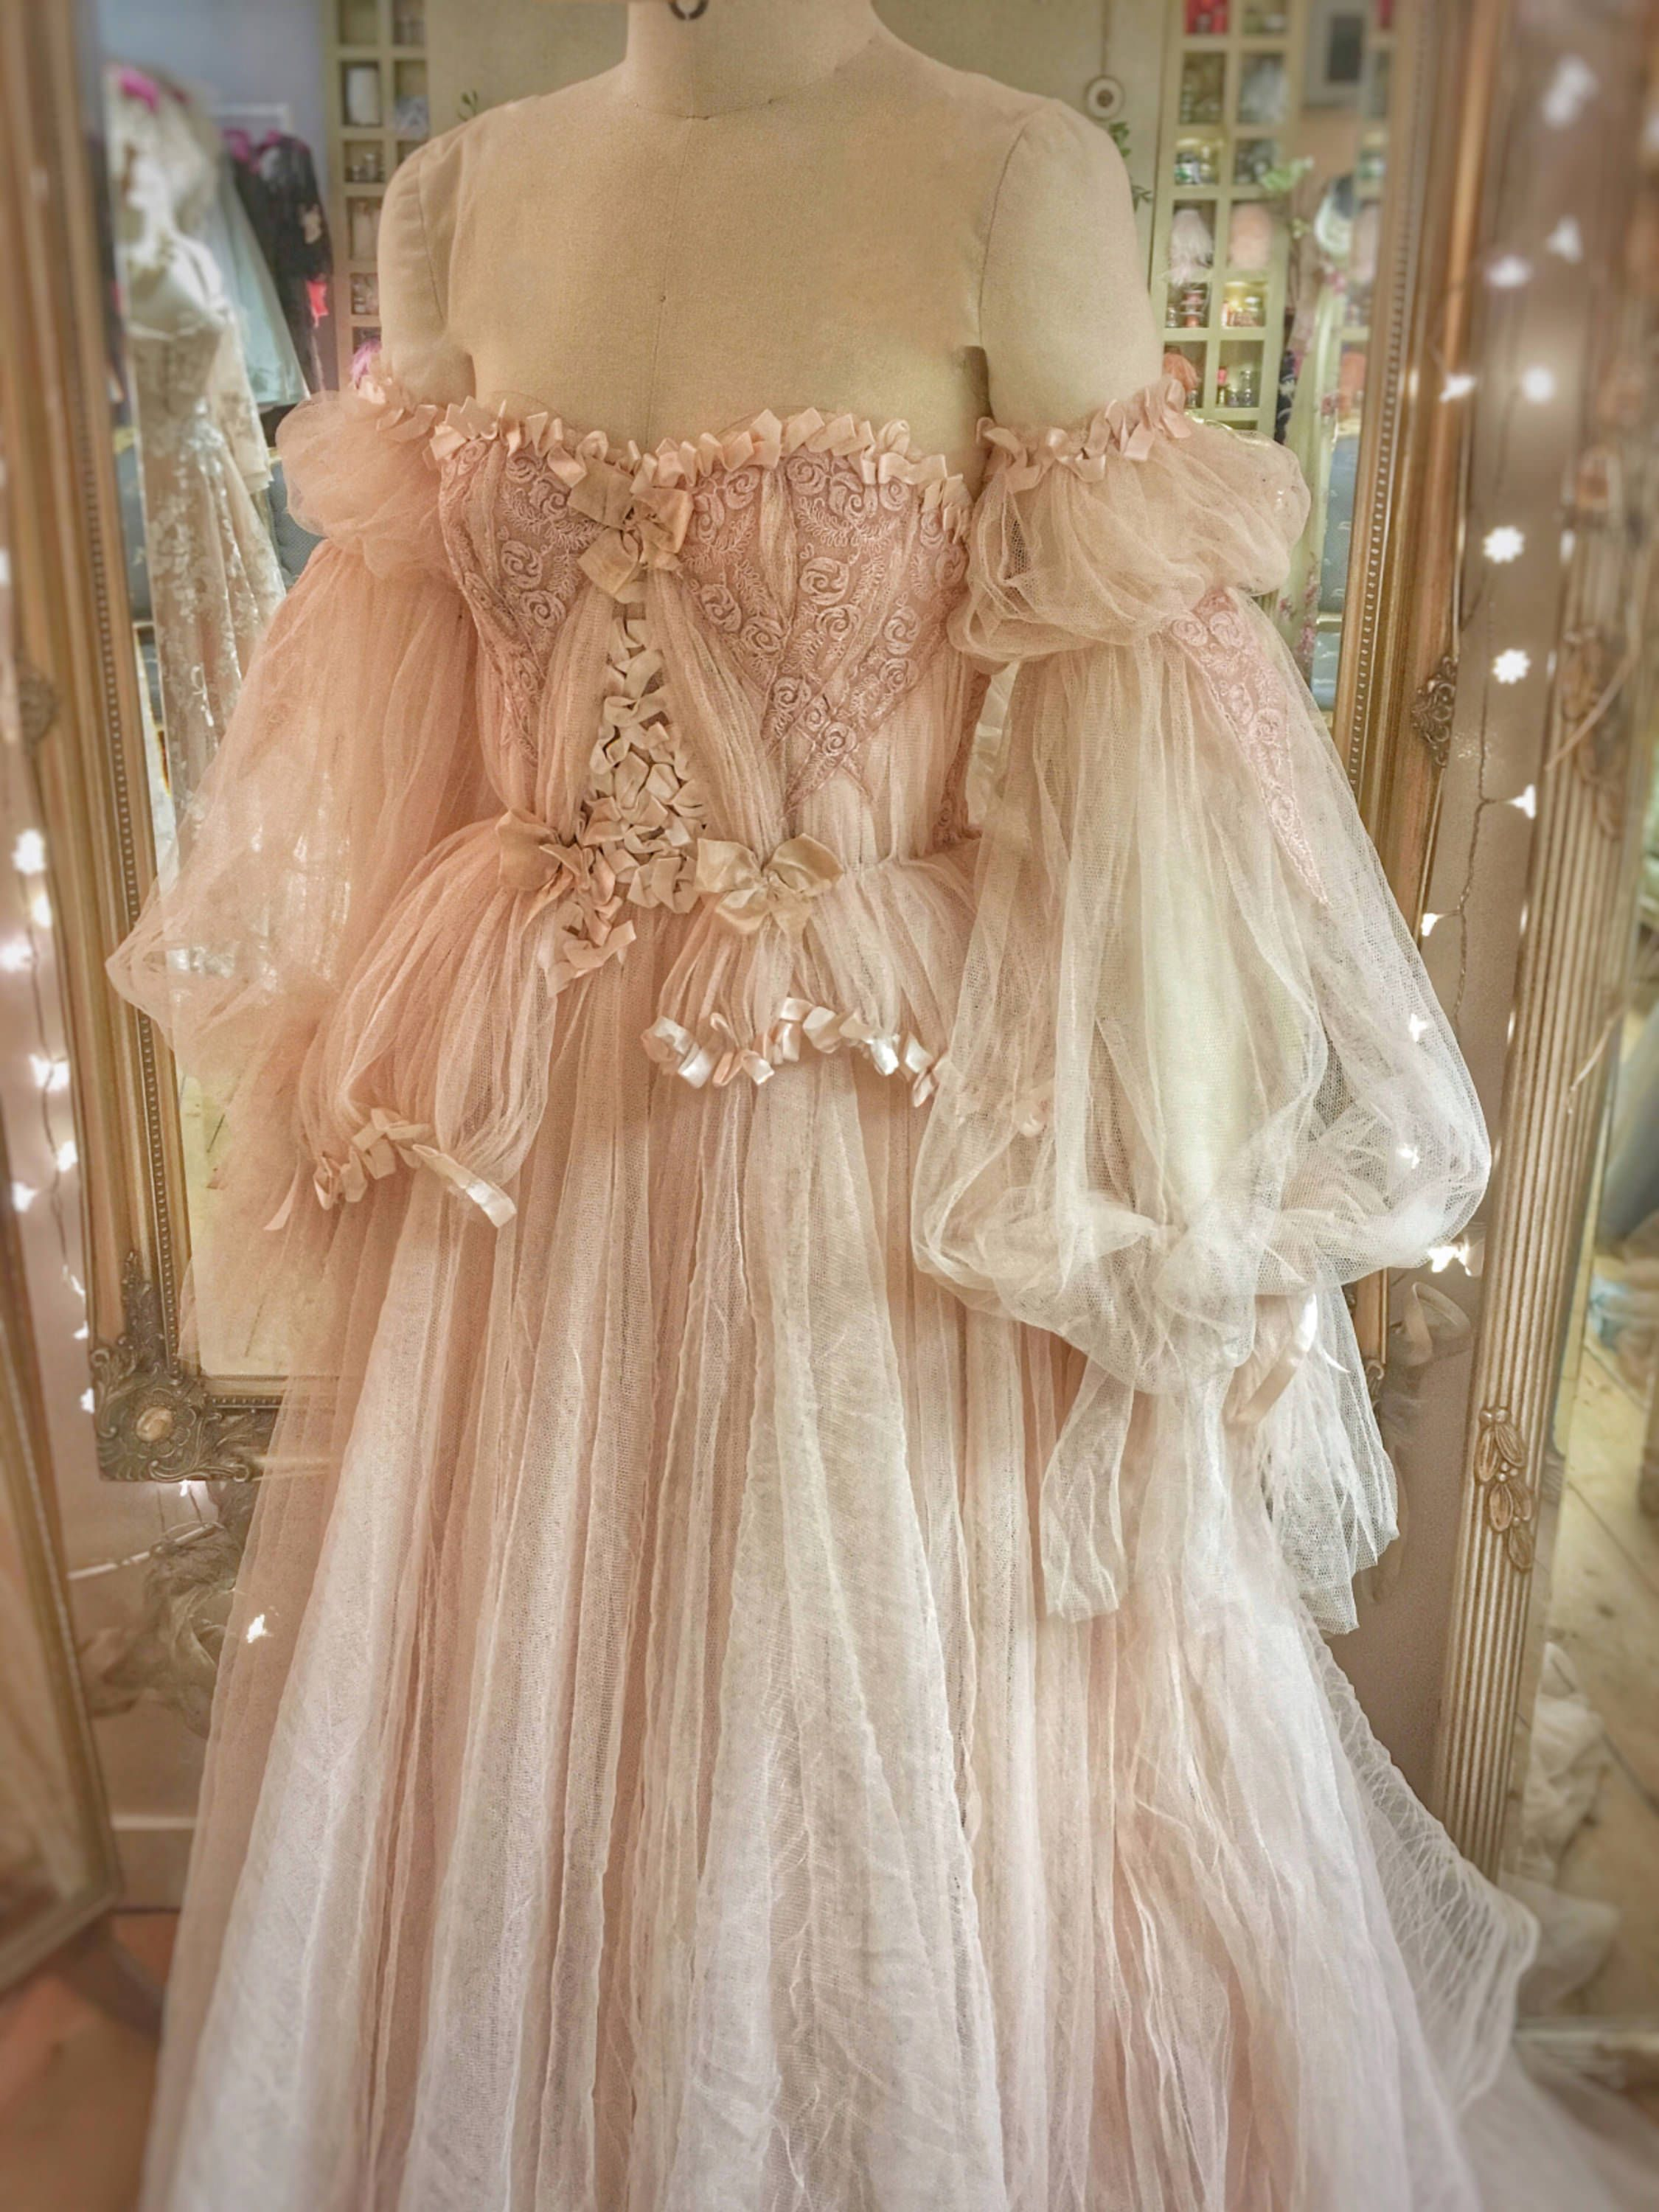 Blush tulle and lace wedding dress with detachable sleeves